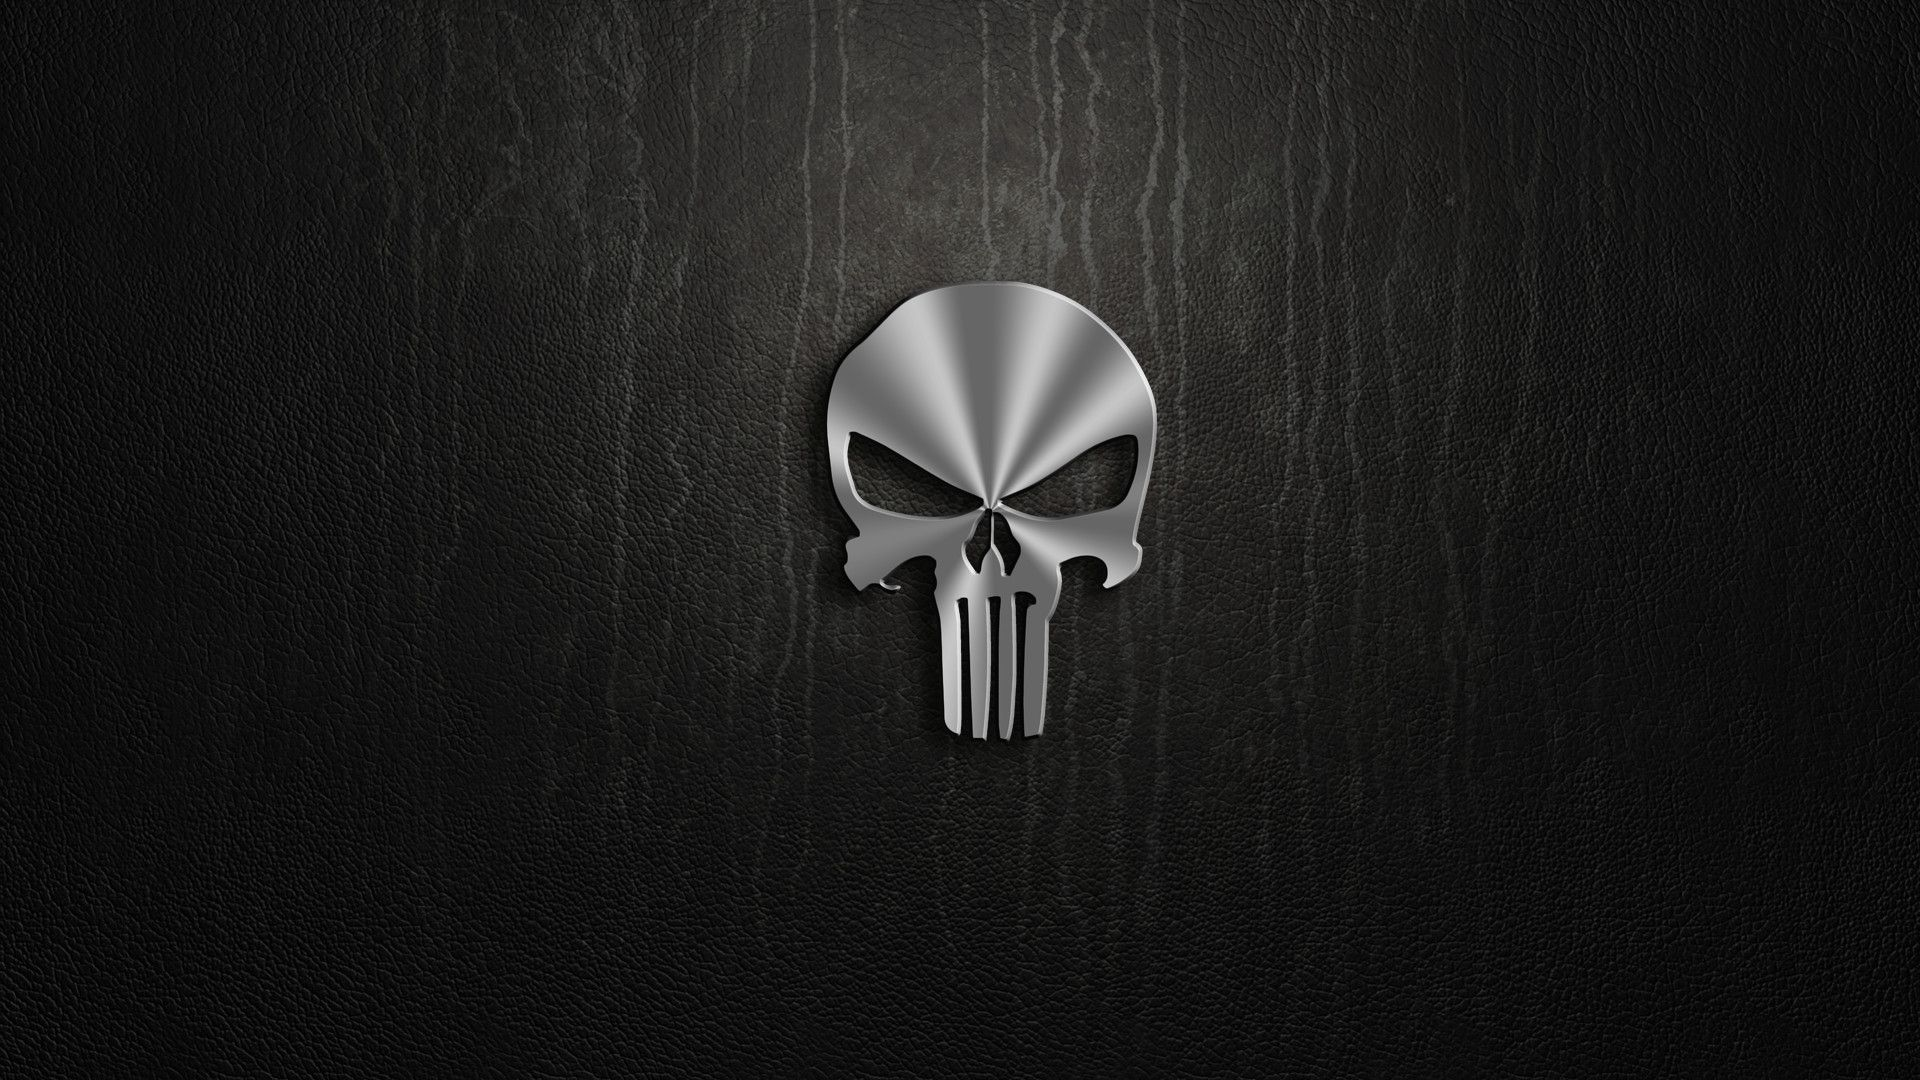 1920x1080 Punisher Wallpaper 1920x1080 (81+ images)